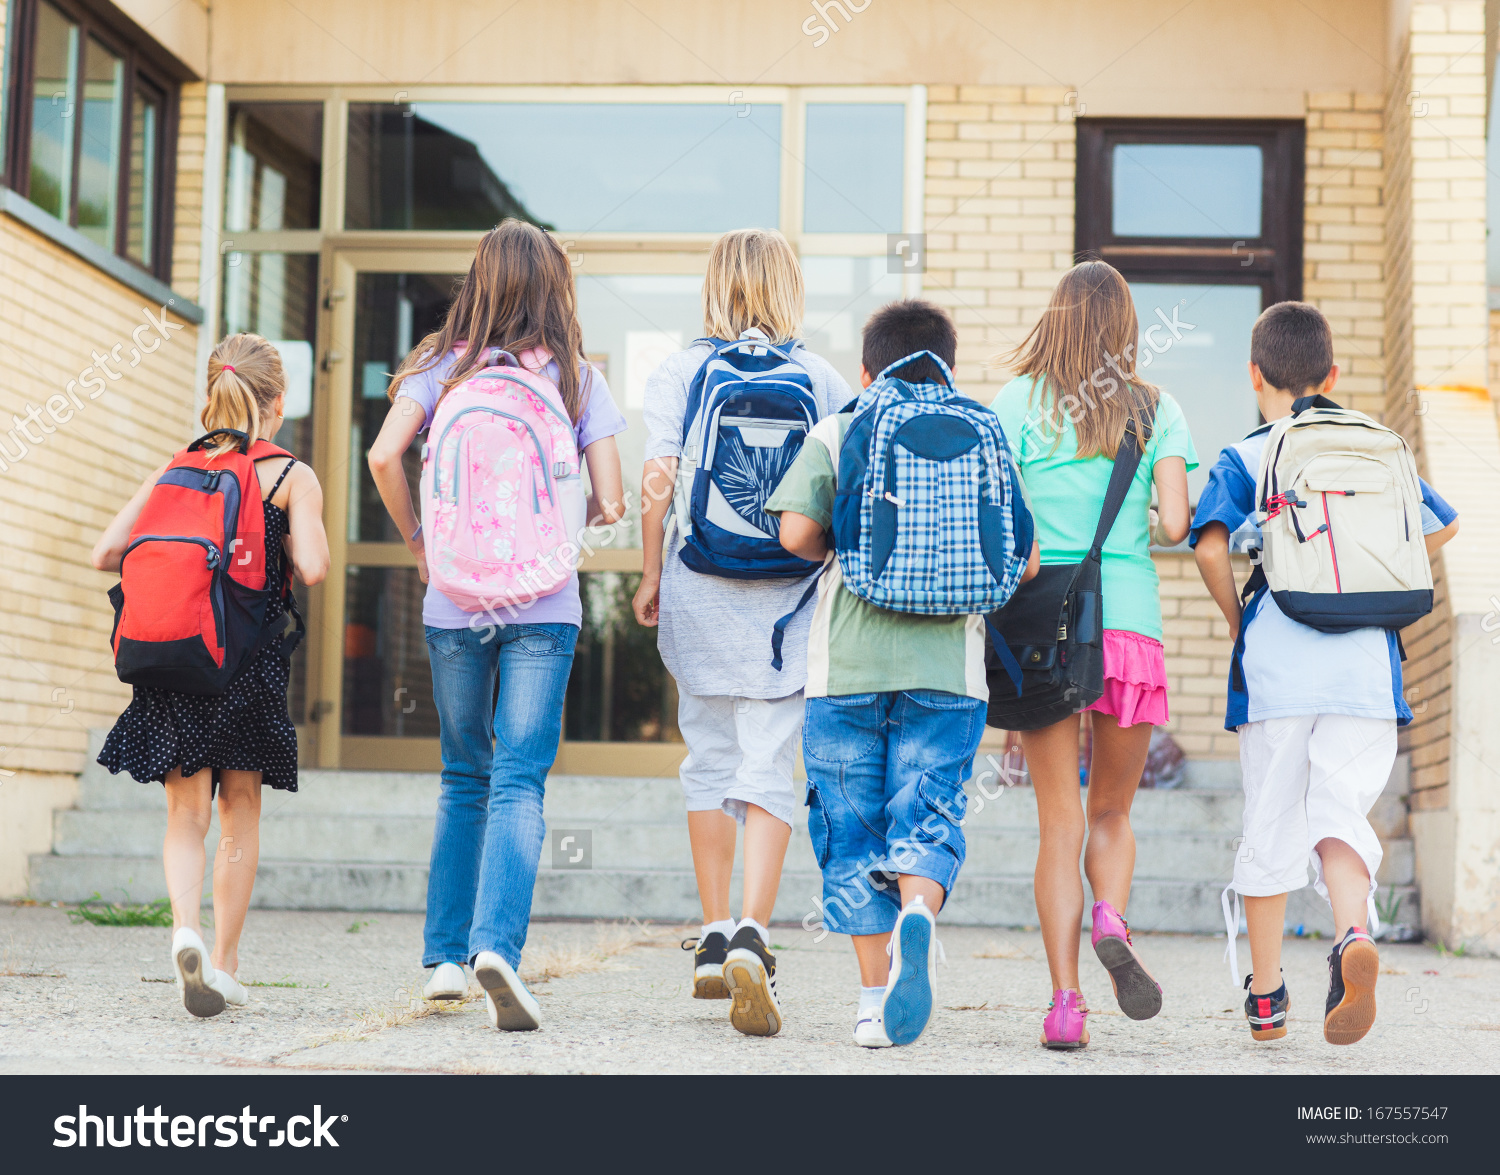 stock-photo-group-of-kids-going-to-school-together-167557547